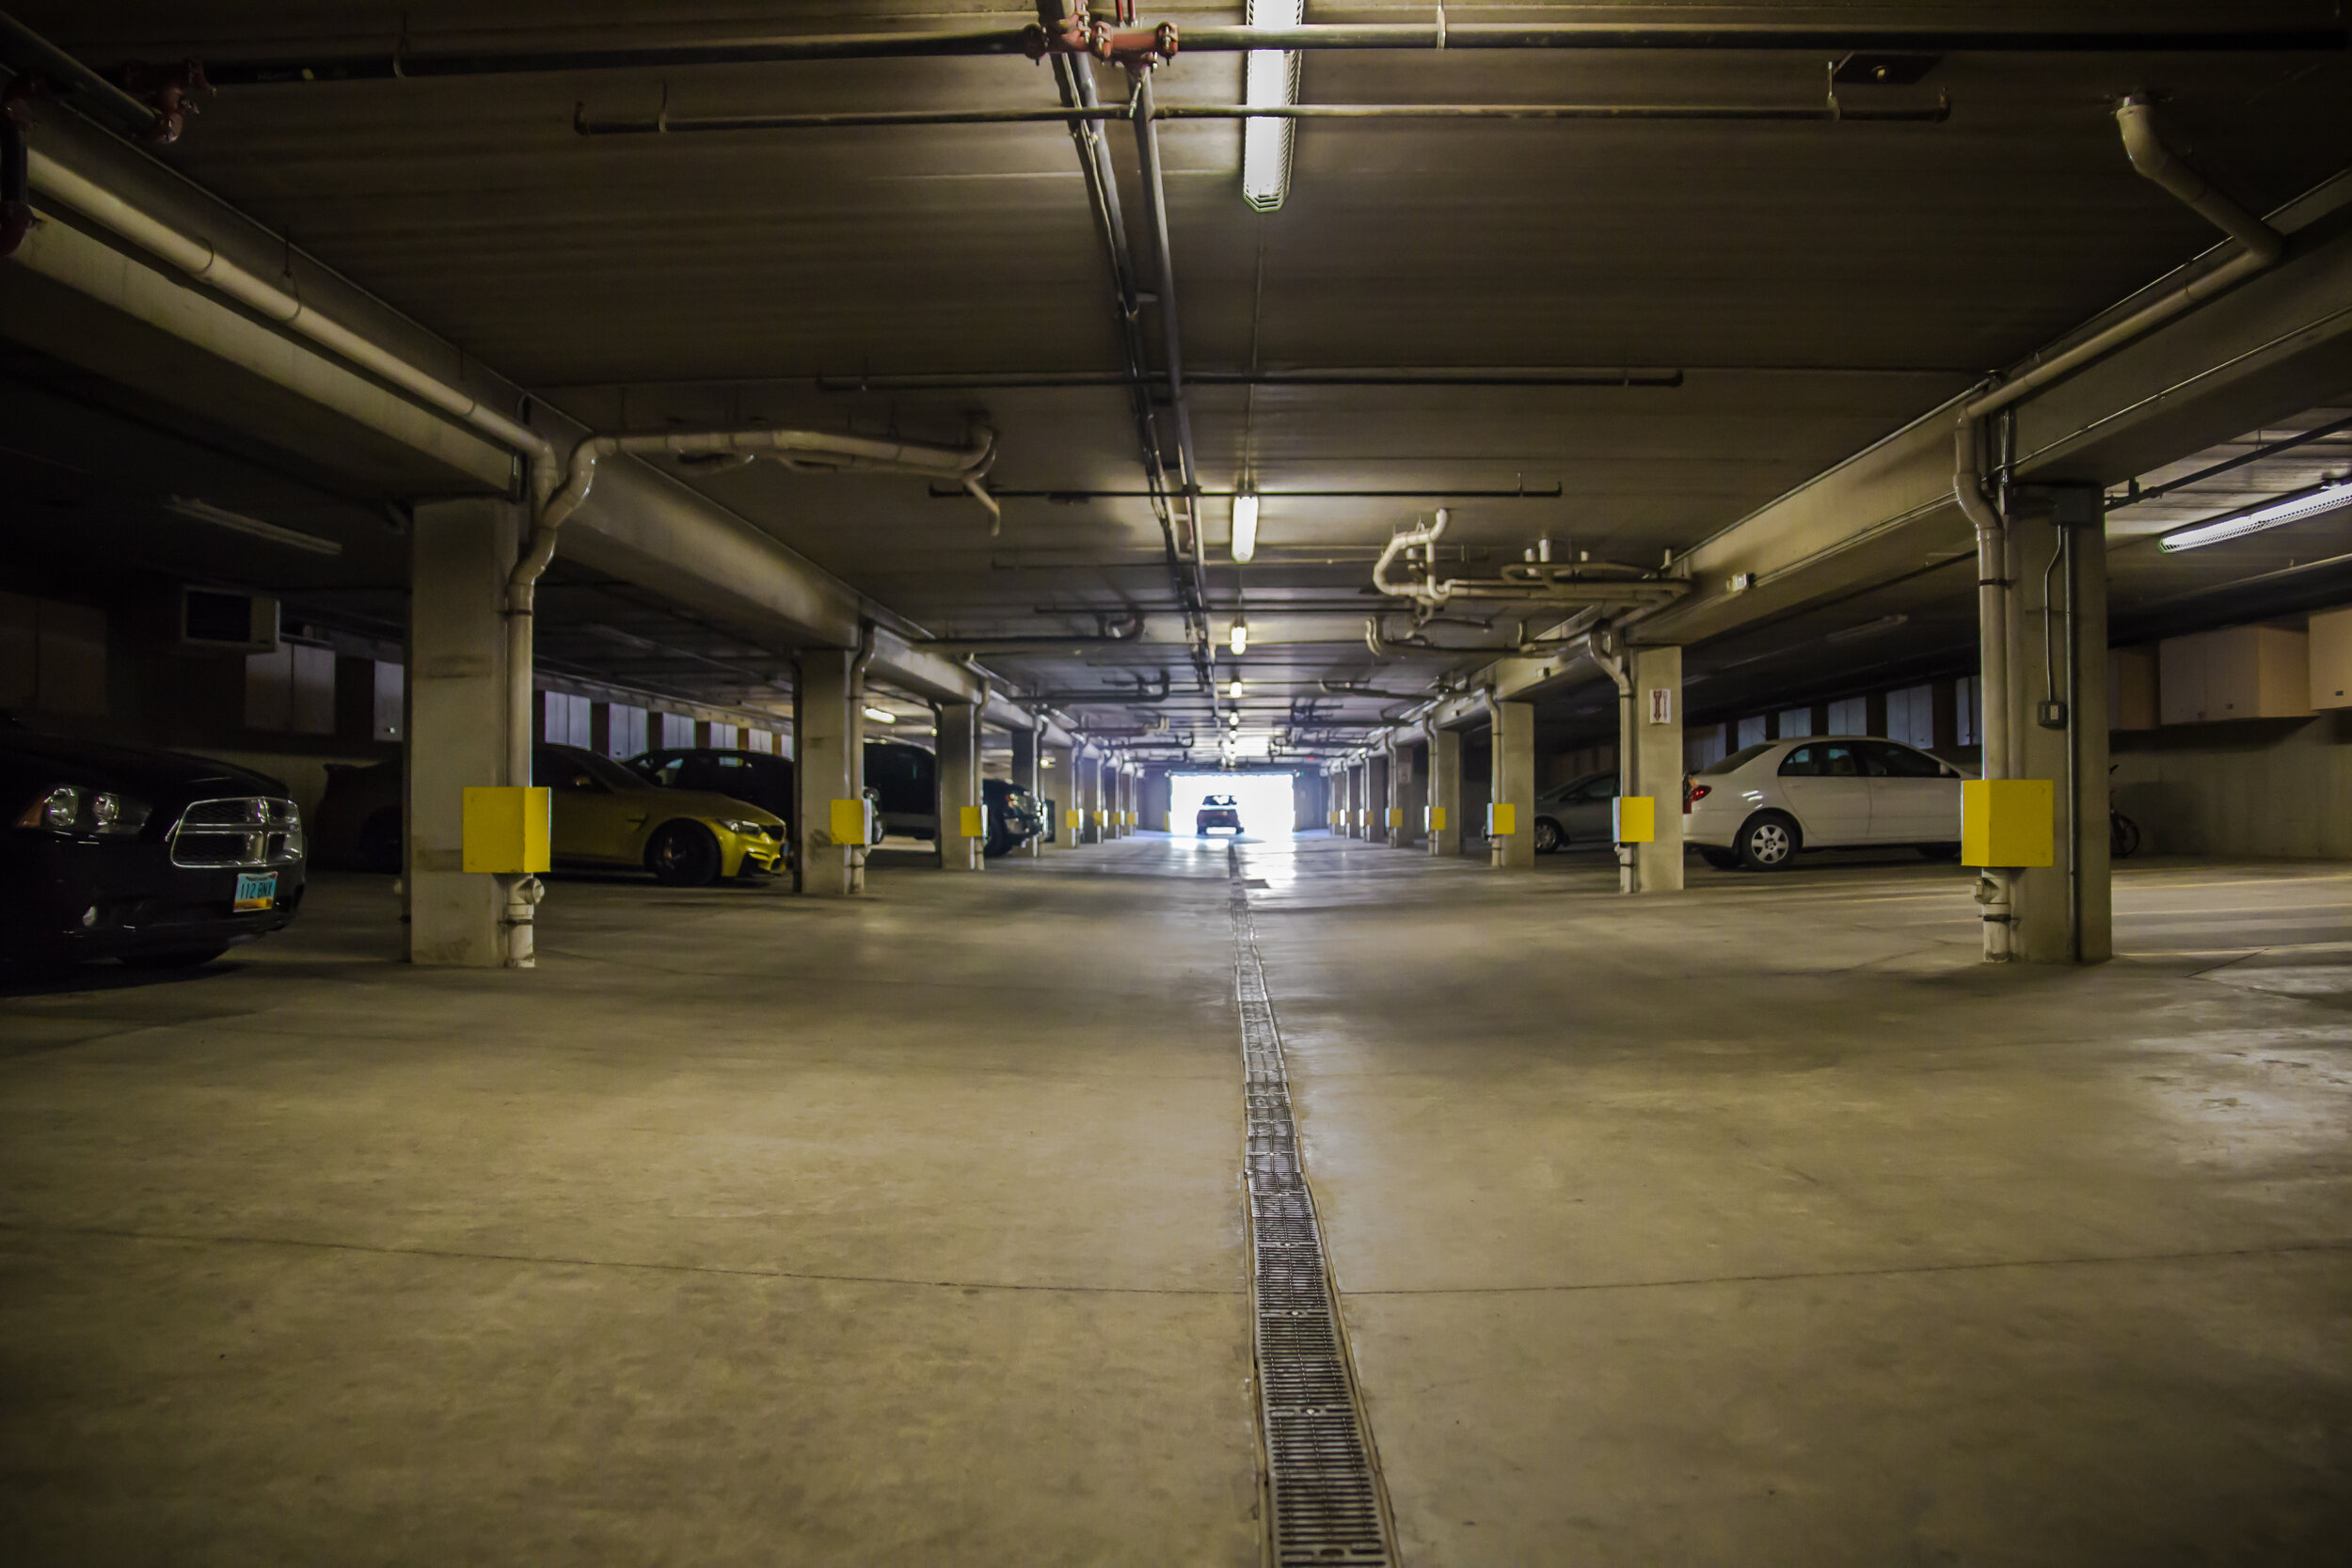 21 Underground Parking with Indiviual Storage and Elevator Access.jpg